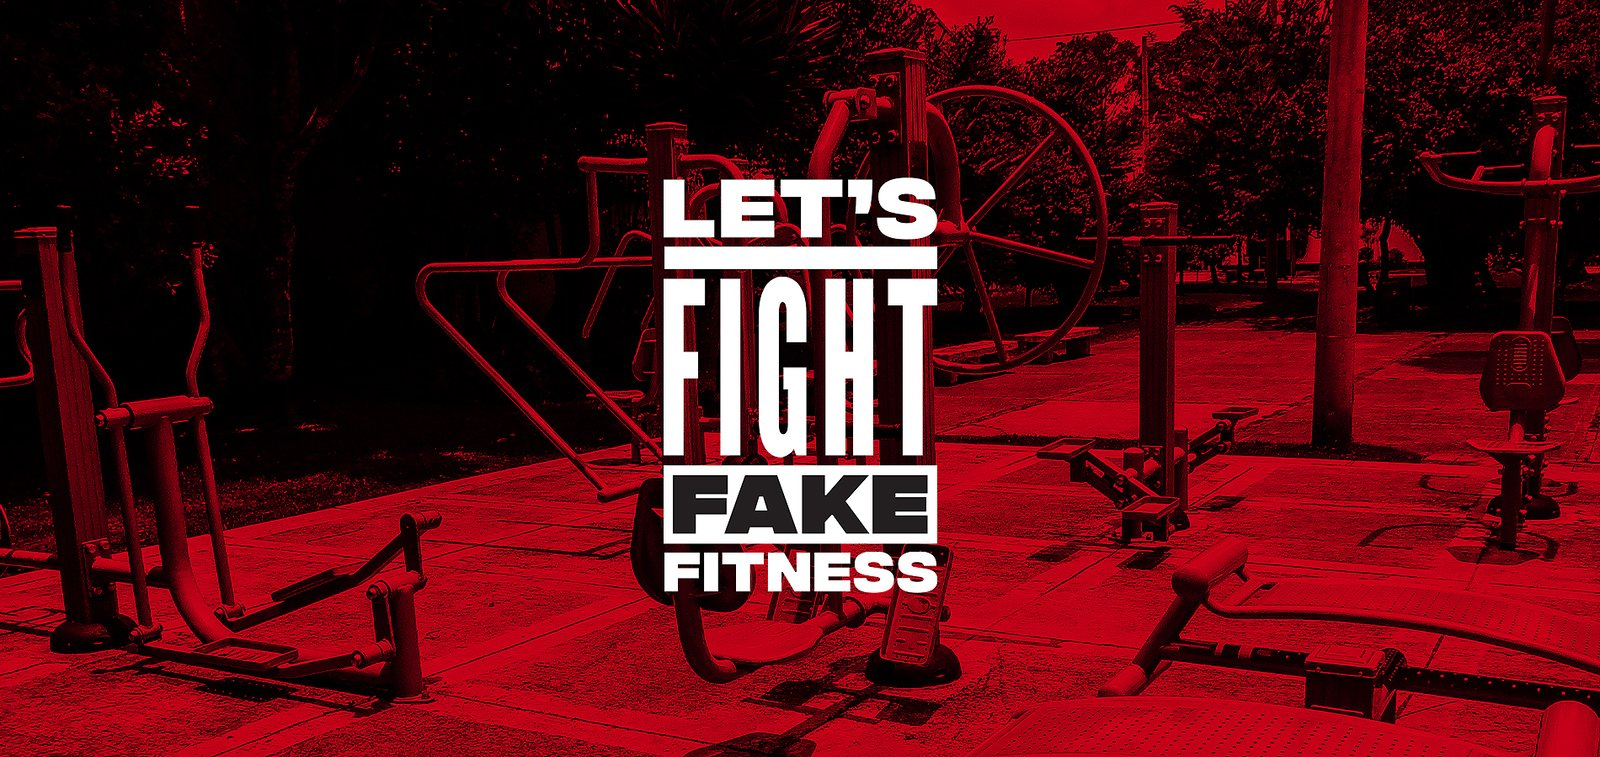 Let's Fight Fake Fitness